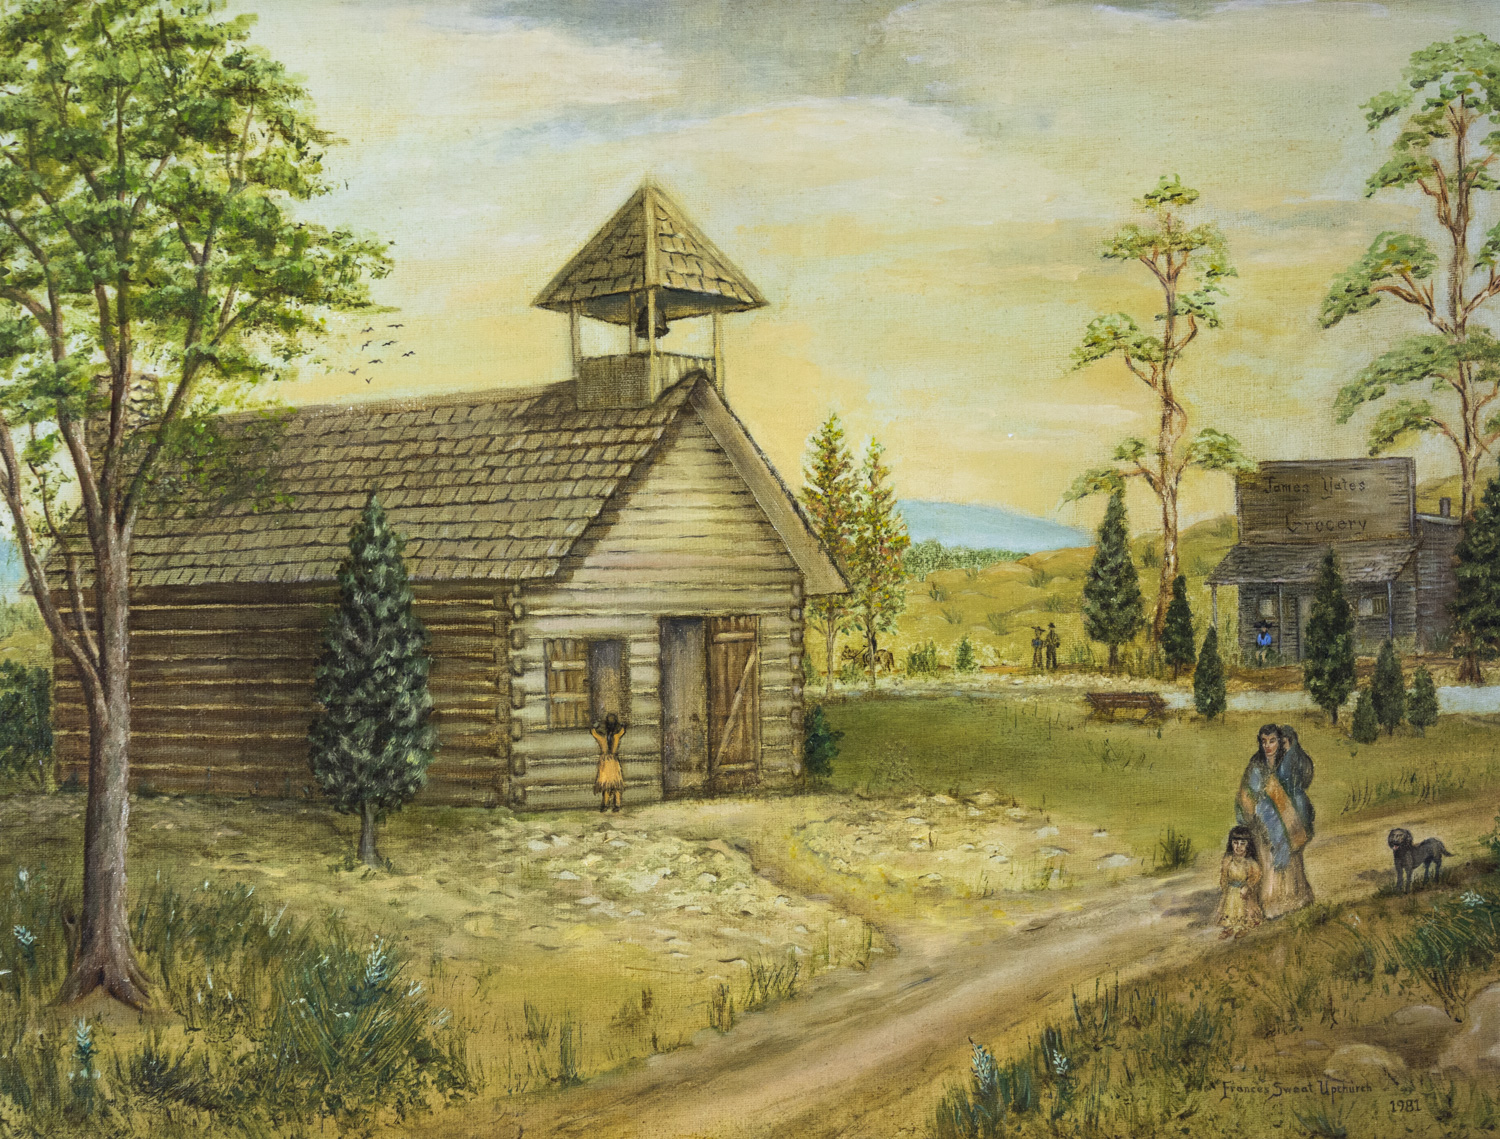 Talladega School House, built circa 1833, Frances Sweat Upchurch, 1981, Oil, 11 Paintings collection